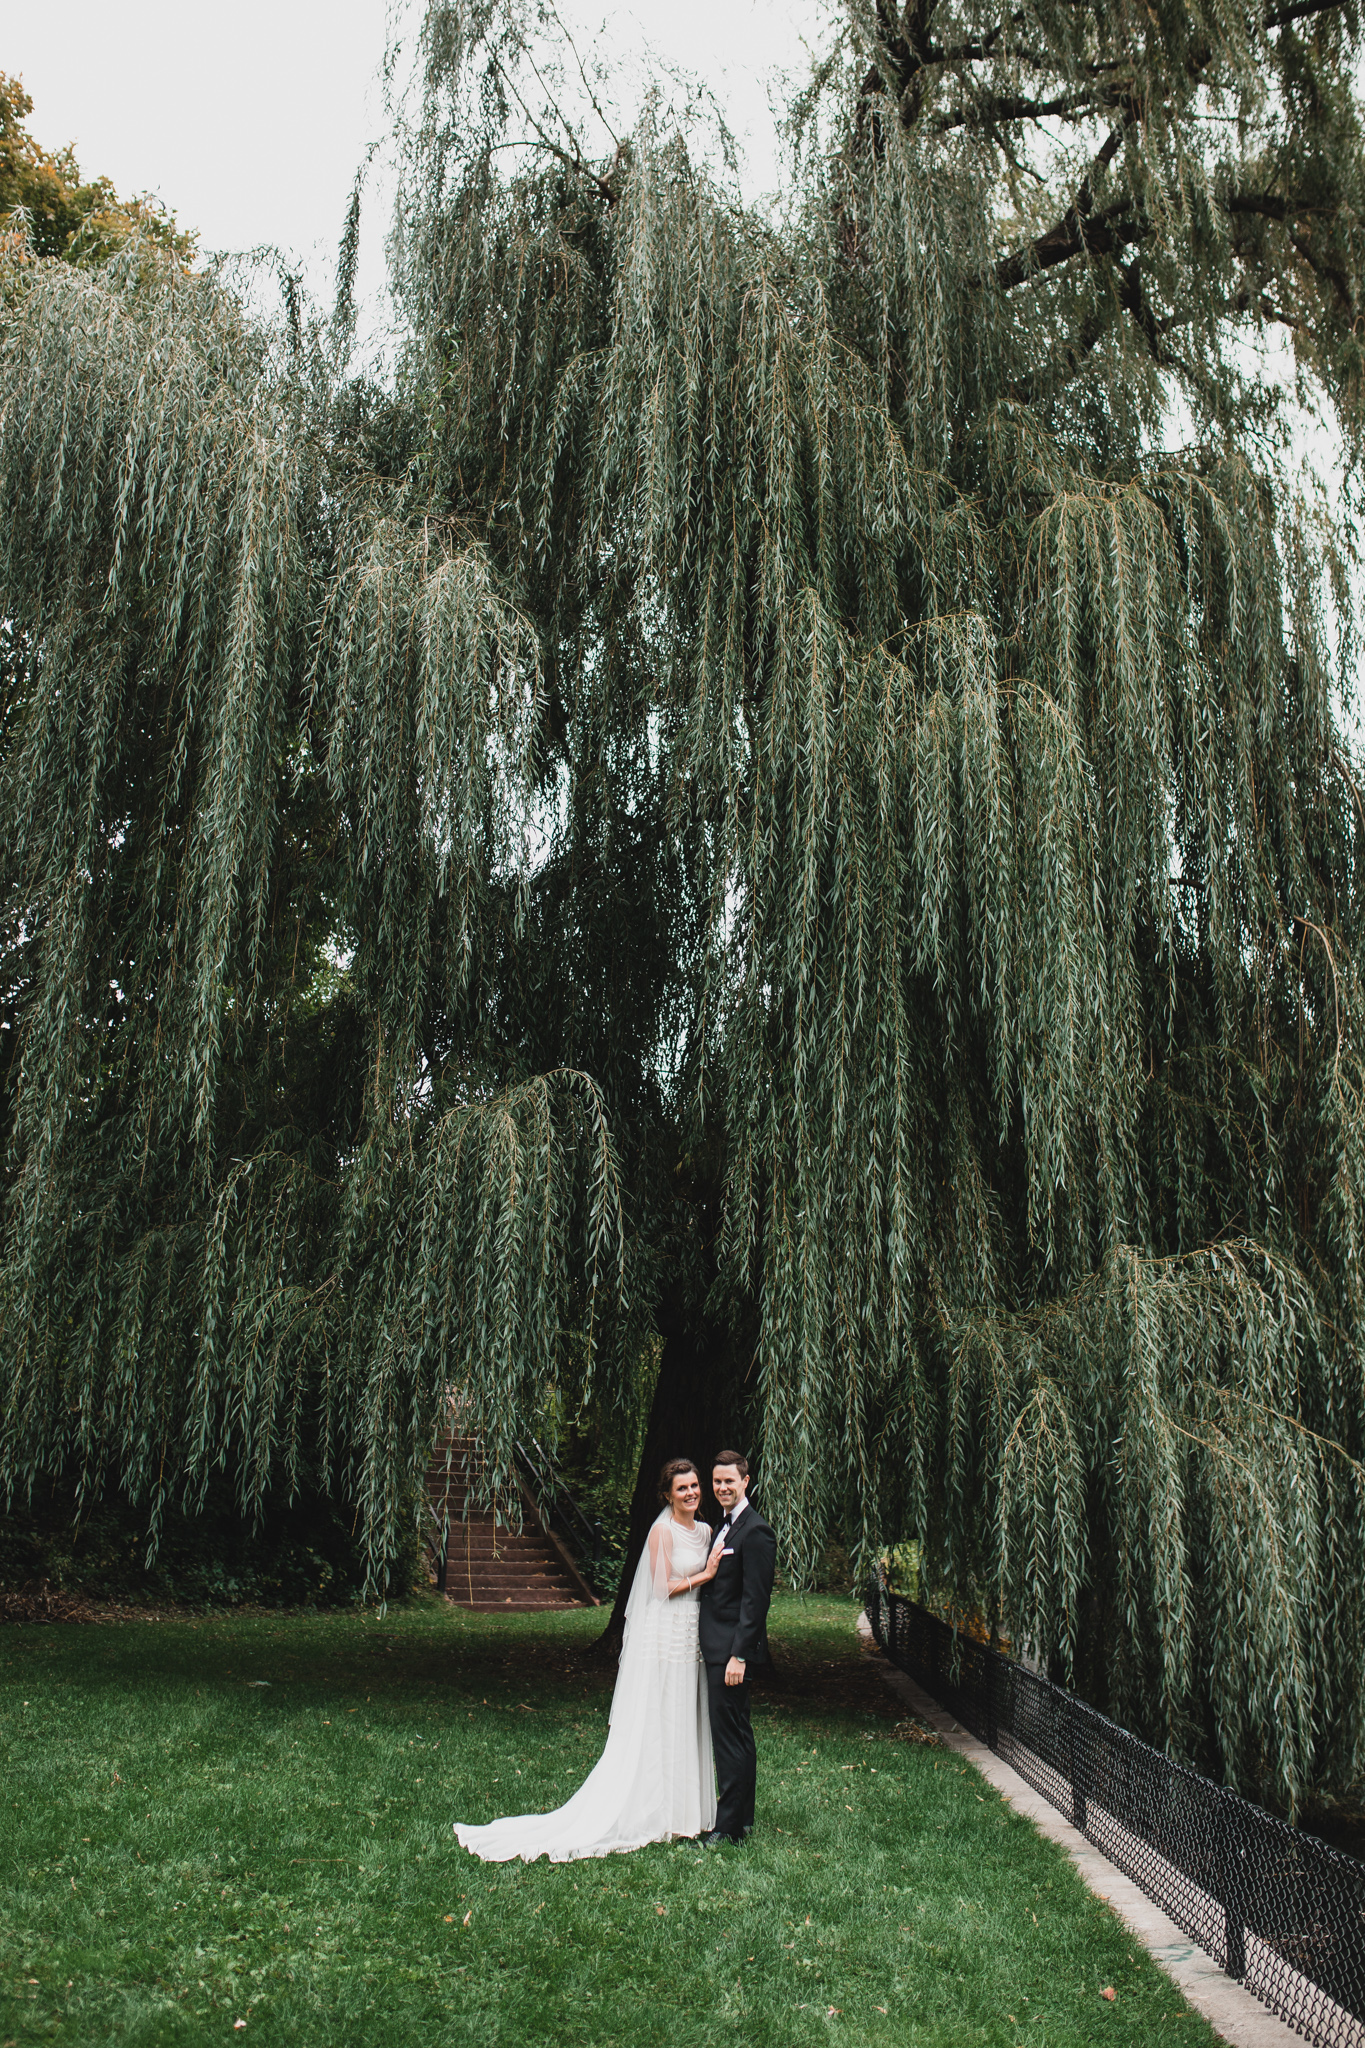 Willow tree - Wedding - photography